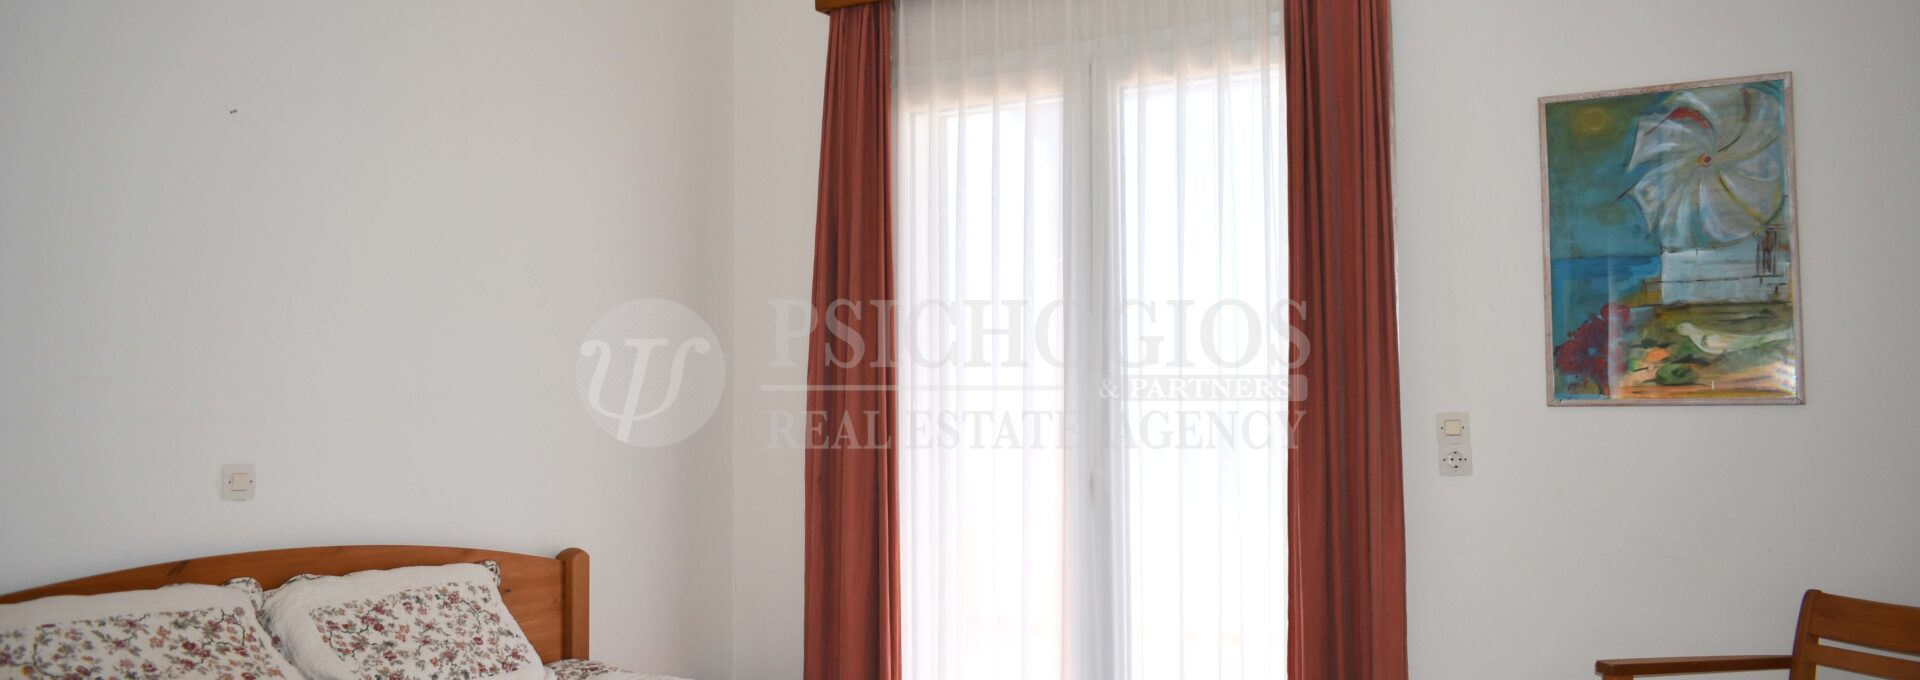 for_sale_house_223_square_meters_plot_730_square_meters_view_to_the_sea_ermioni_greece (45)